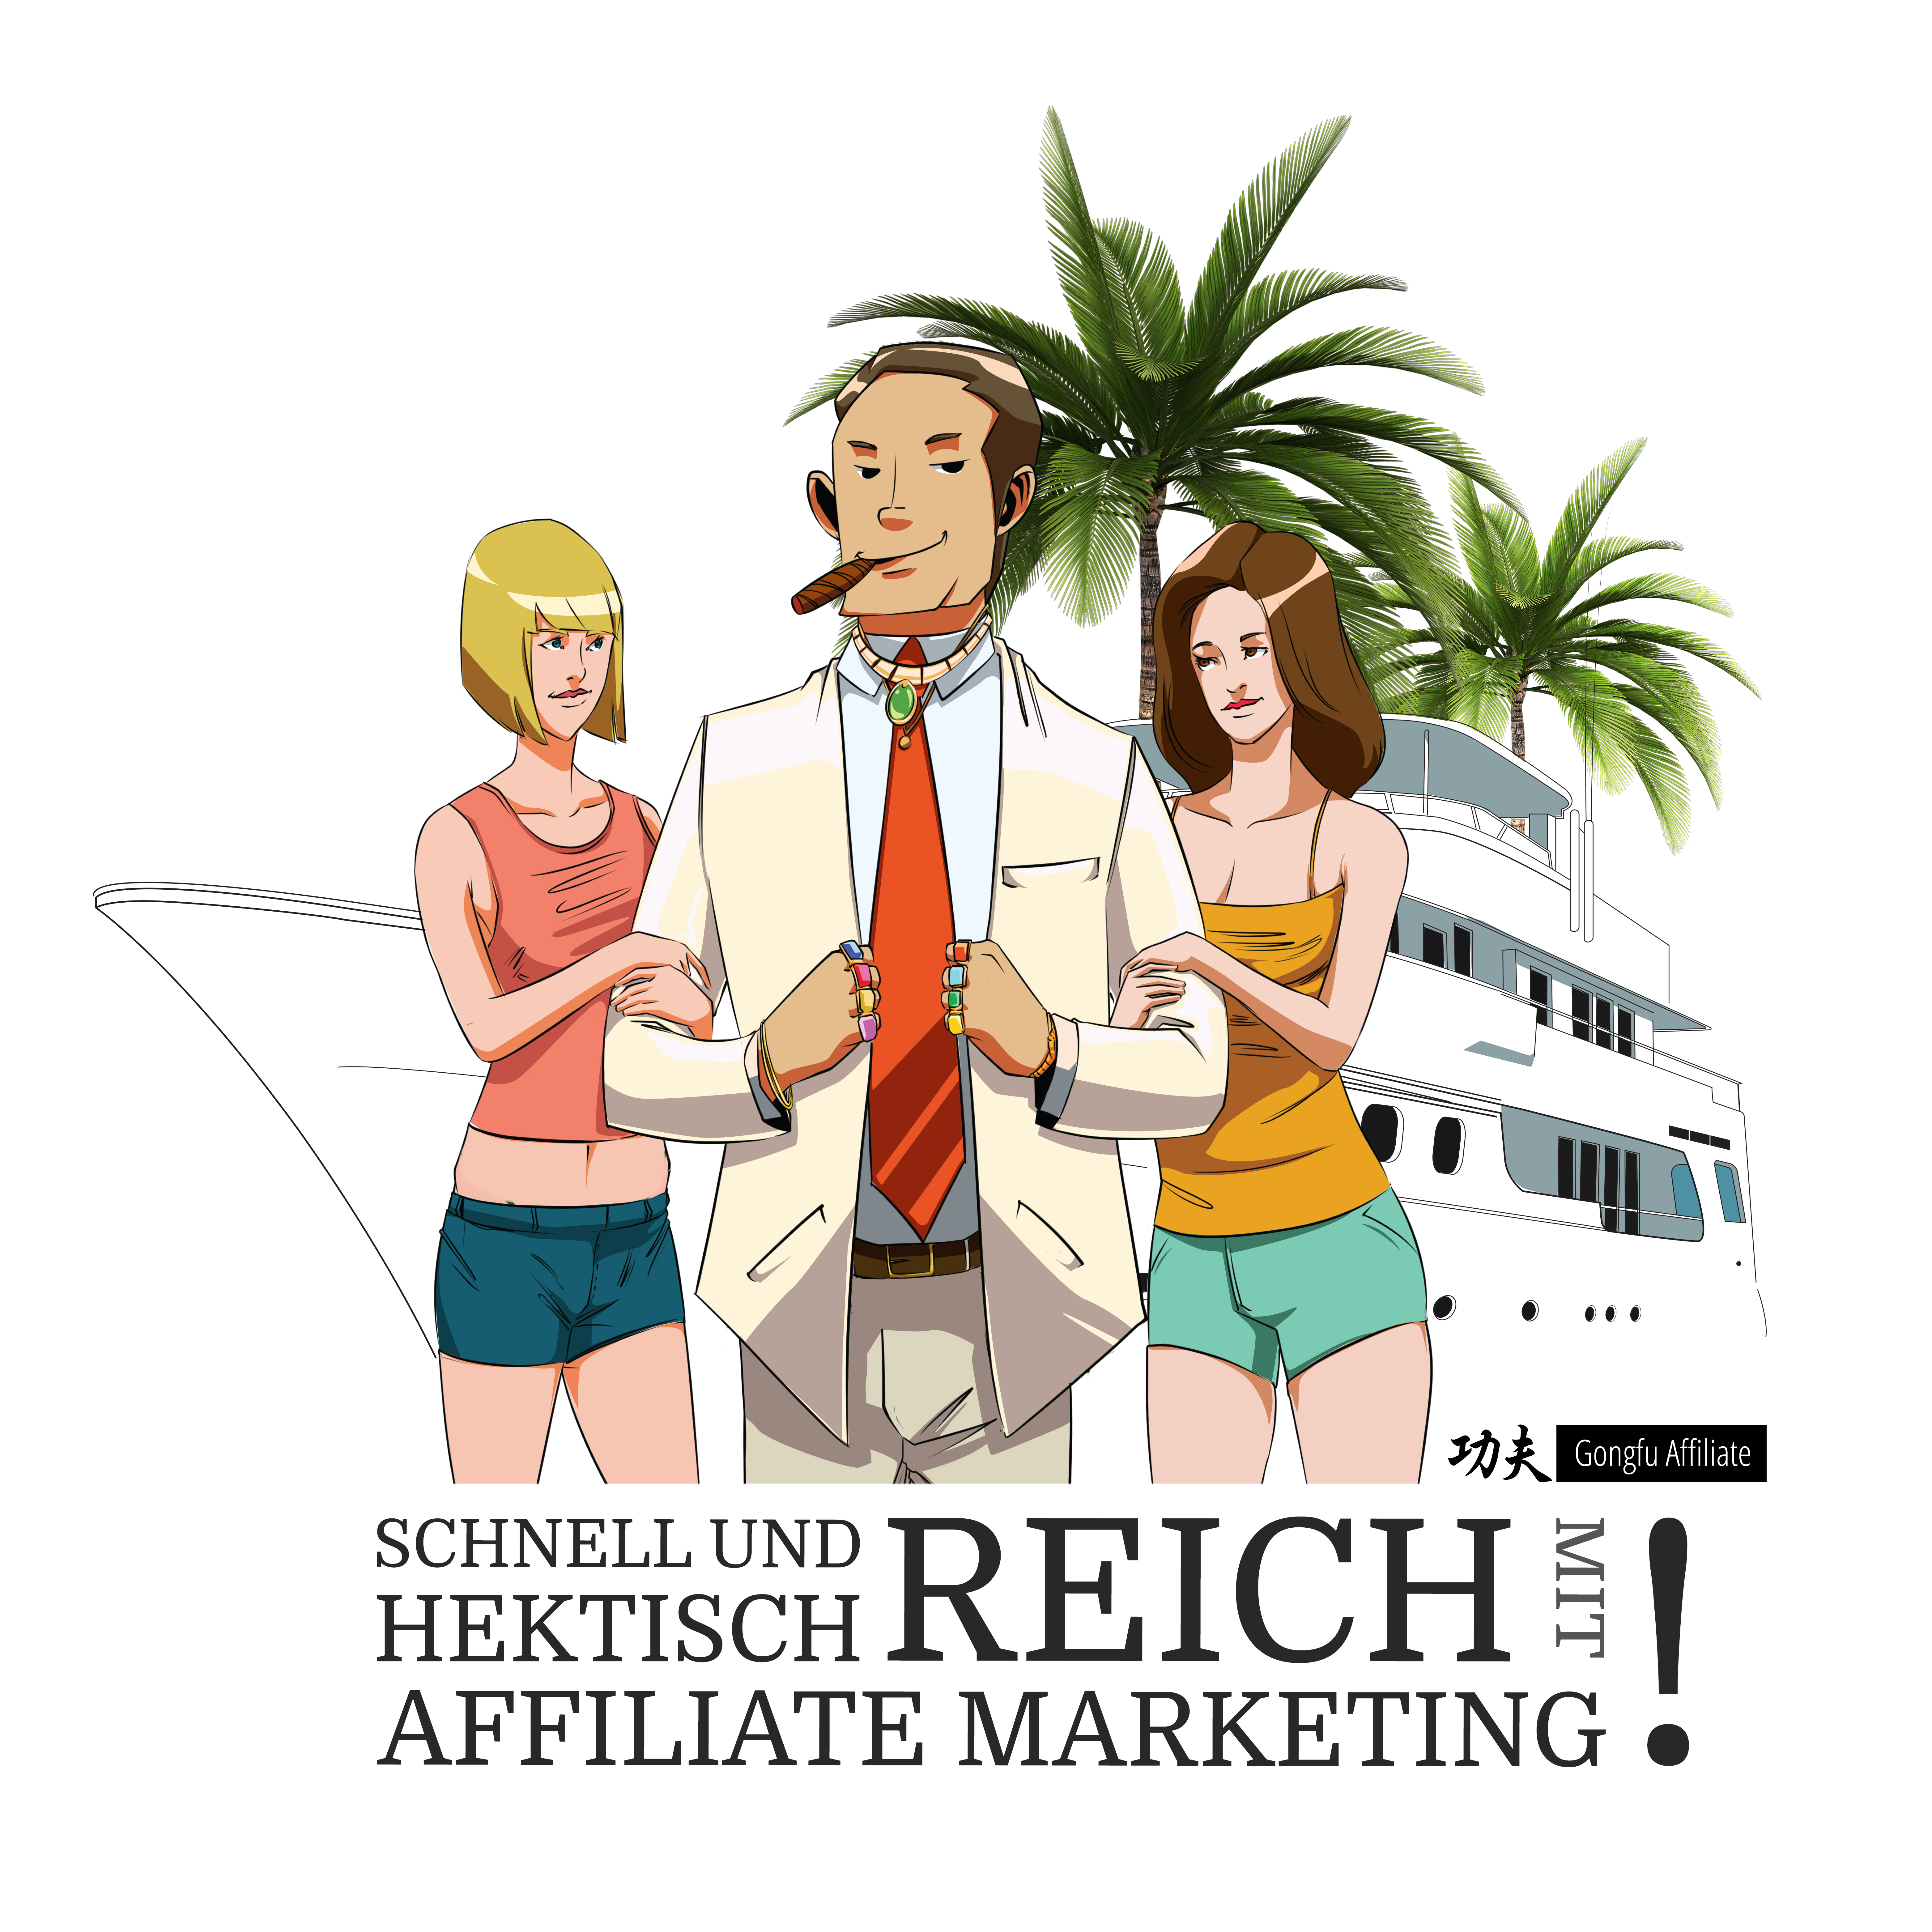 Affiliate Marketing Parodie: Schnell und hektisch reich mit Affiliate Markerting.